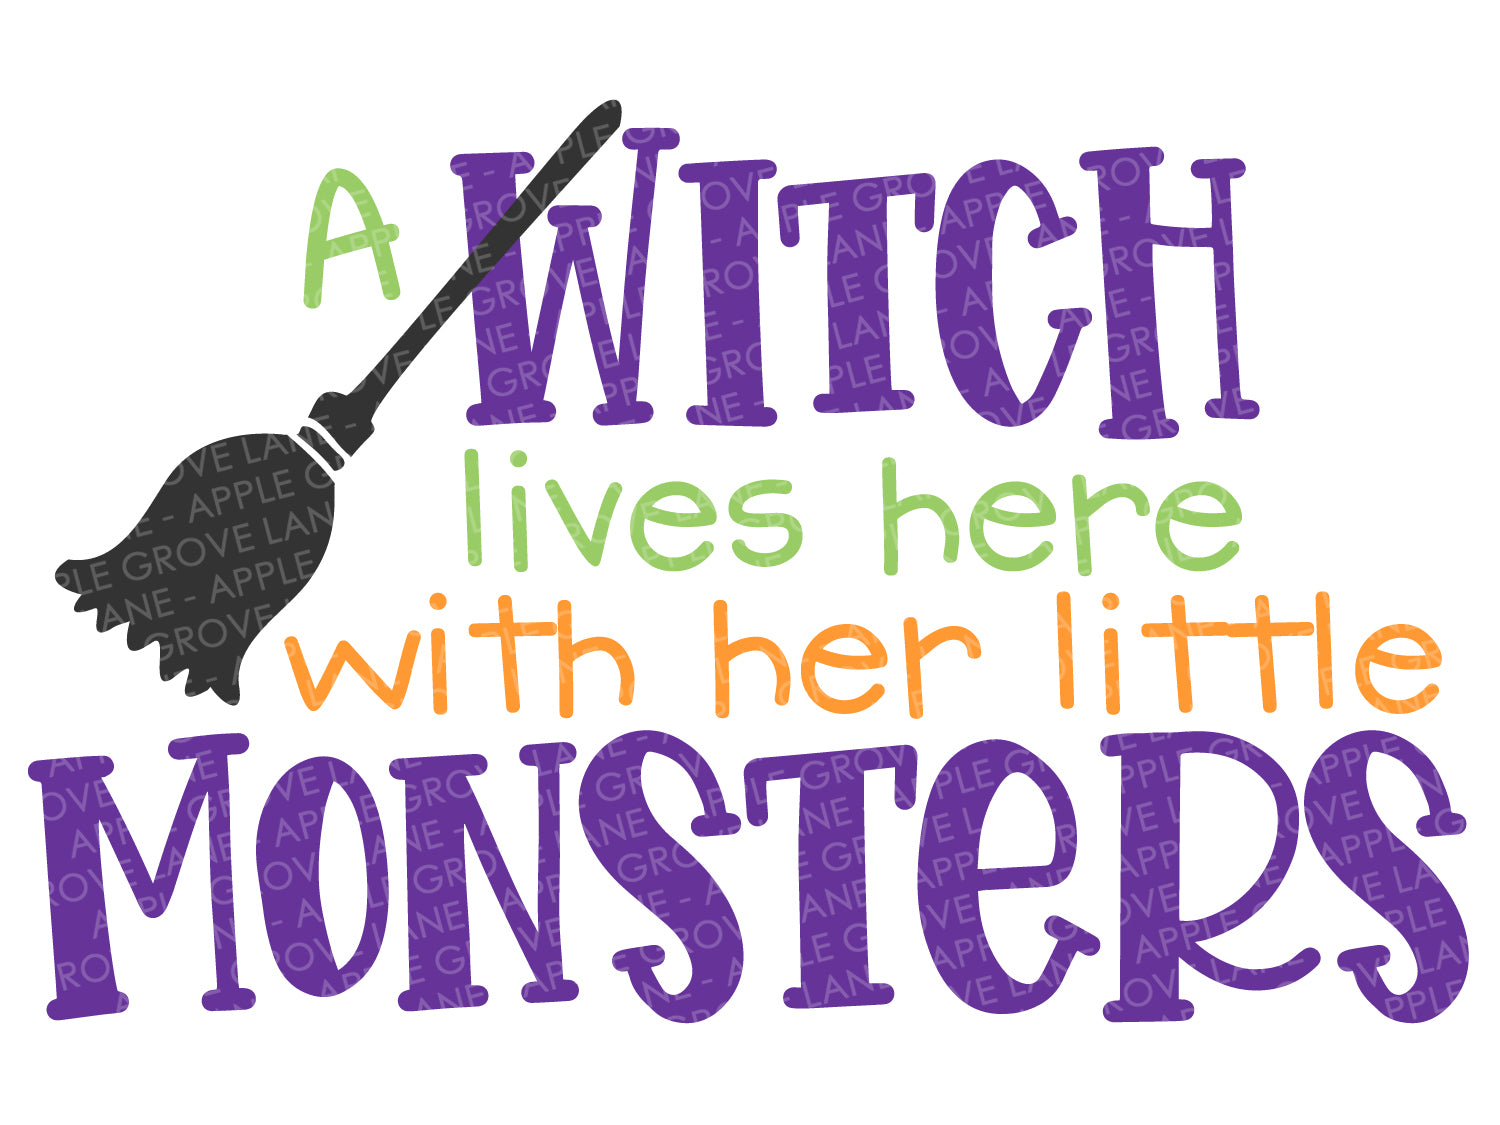 Witch Svg Witch Lives Here Svg Her Little Monsters Svg Halloween Apple Grove Lane